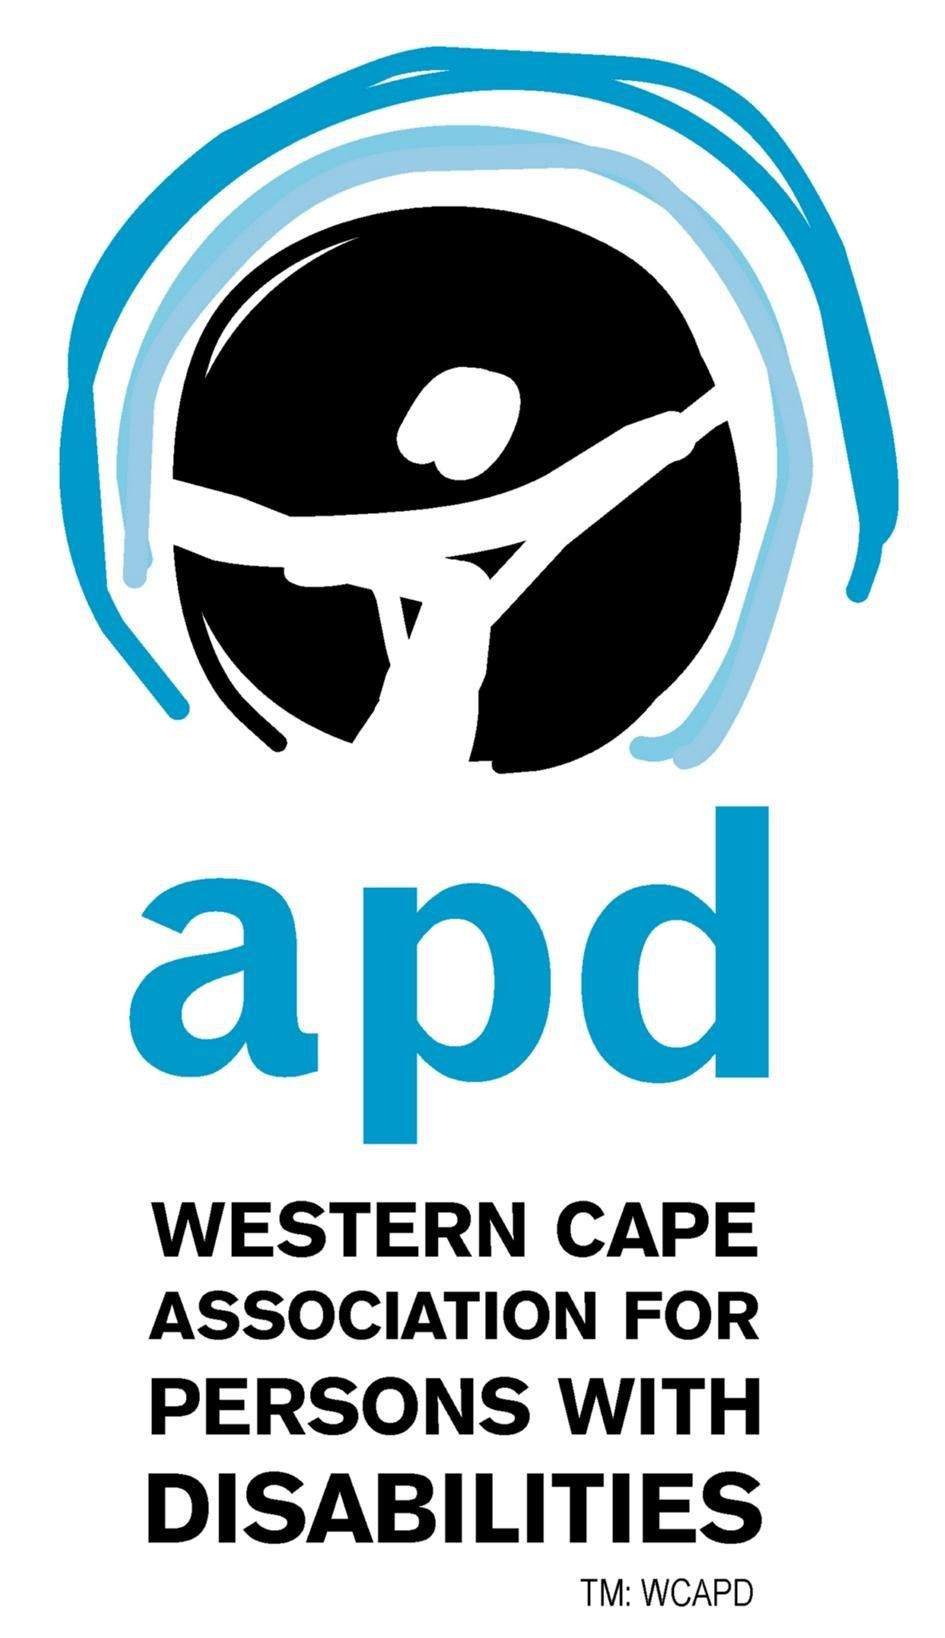 Western Cape Association For Persons With Disabilities Phambanotech Persons With Disabilities Disability Western Cape